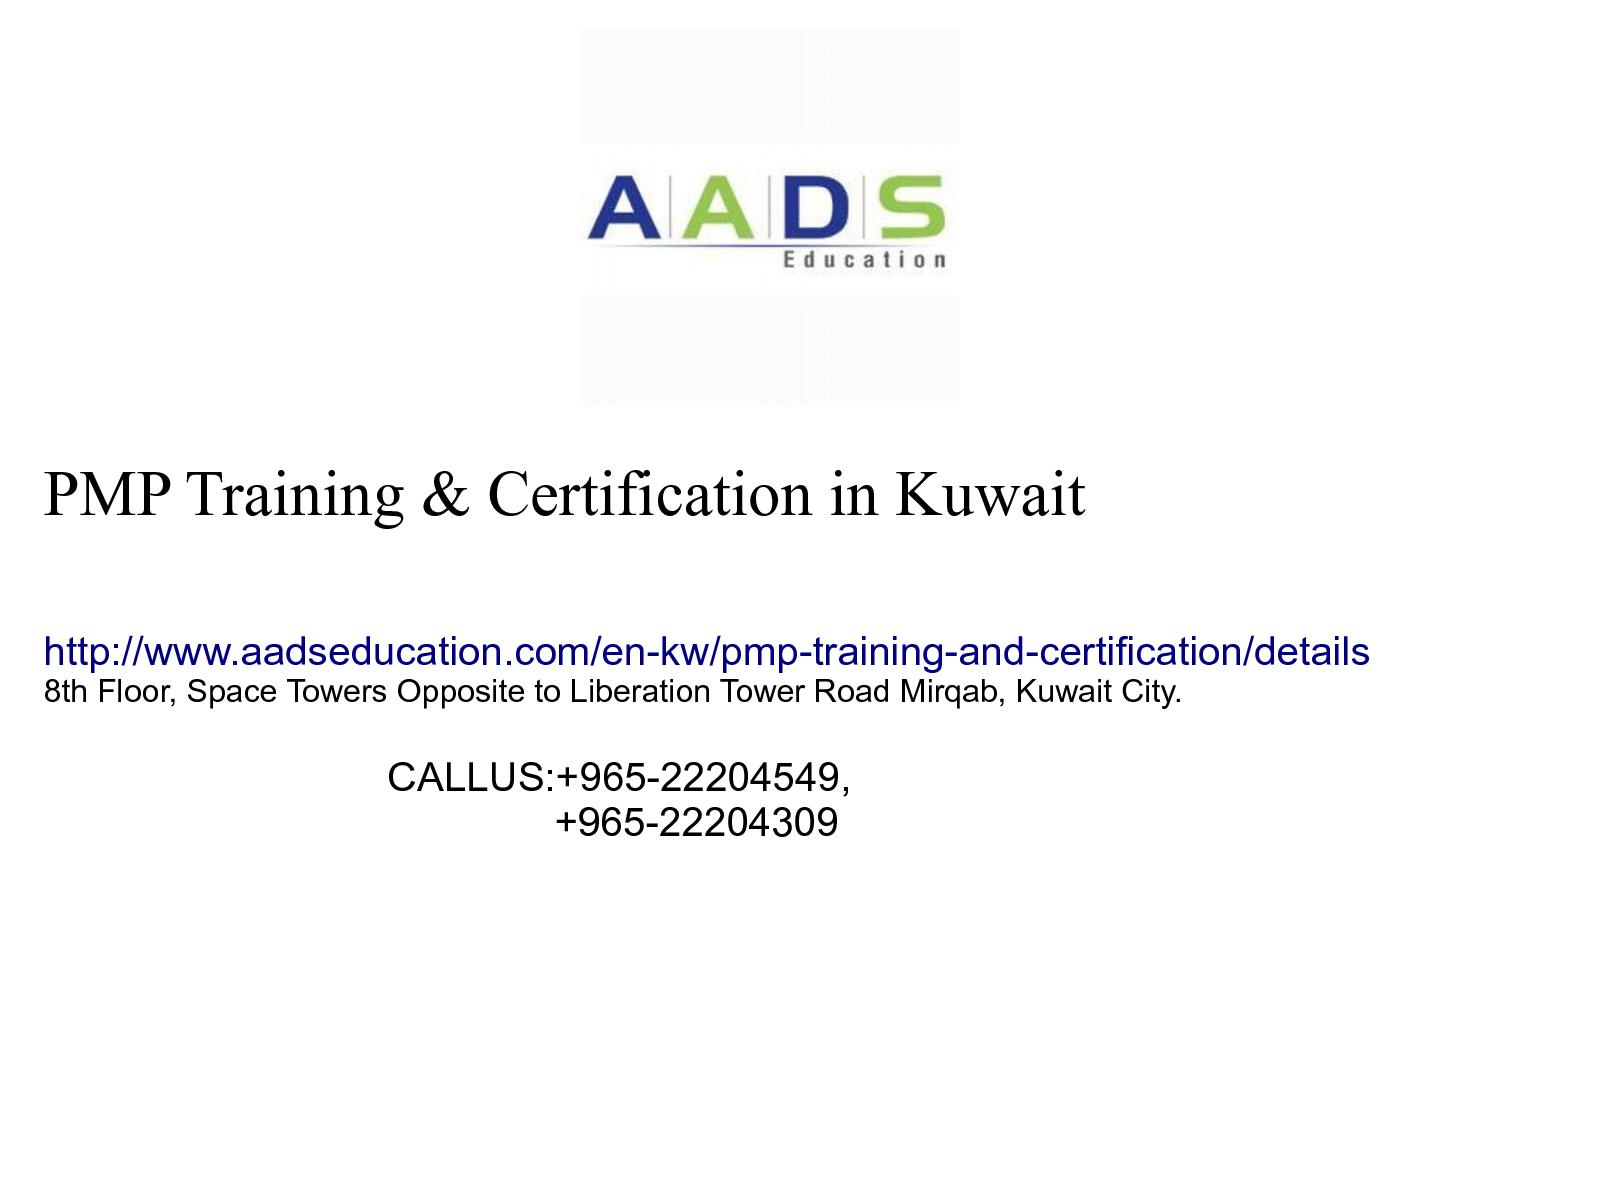 Calamo Pmp Certification In Kuwait Aads Education